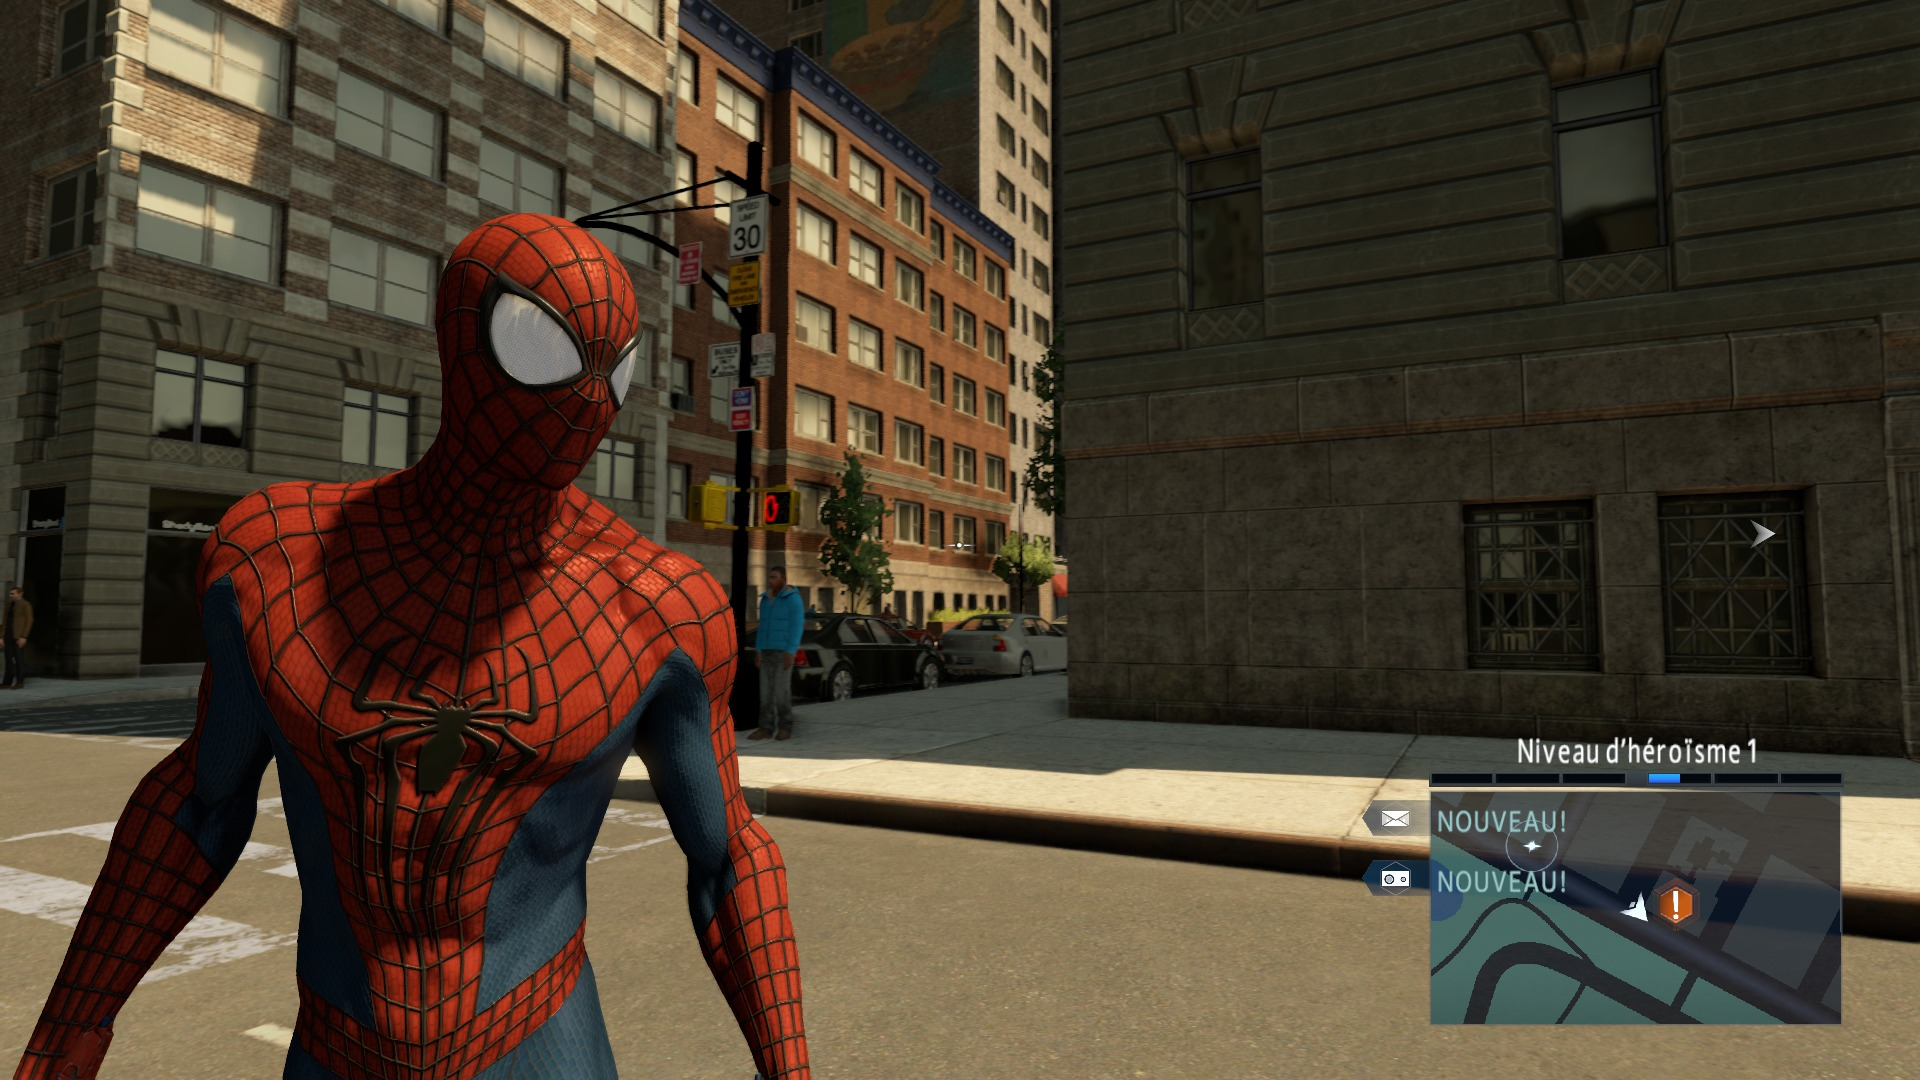 Test du jeu vid o the amazing spider man 2 sur ps4 - Jeux de spiderman 3 gratuit ...